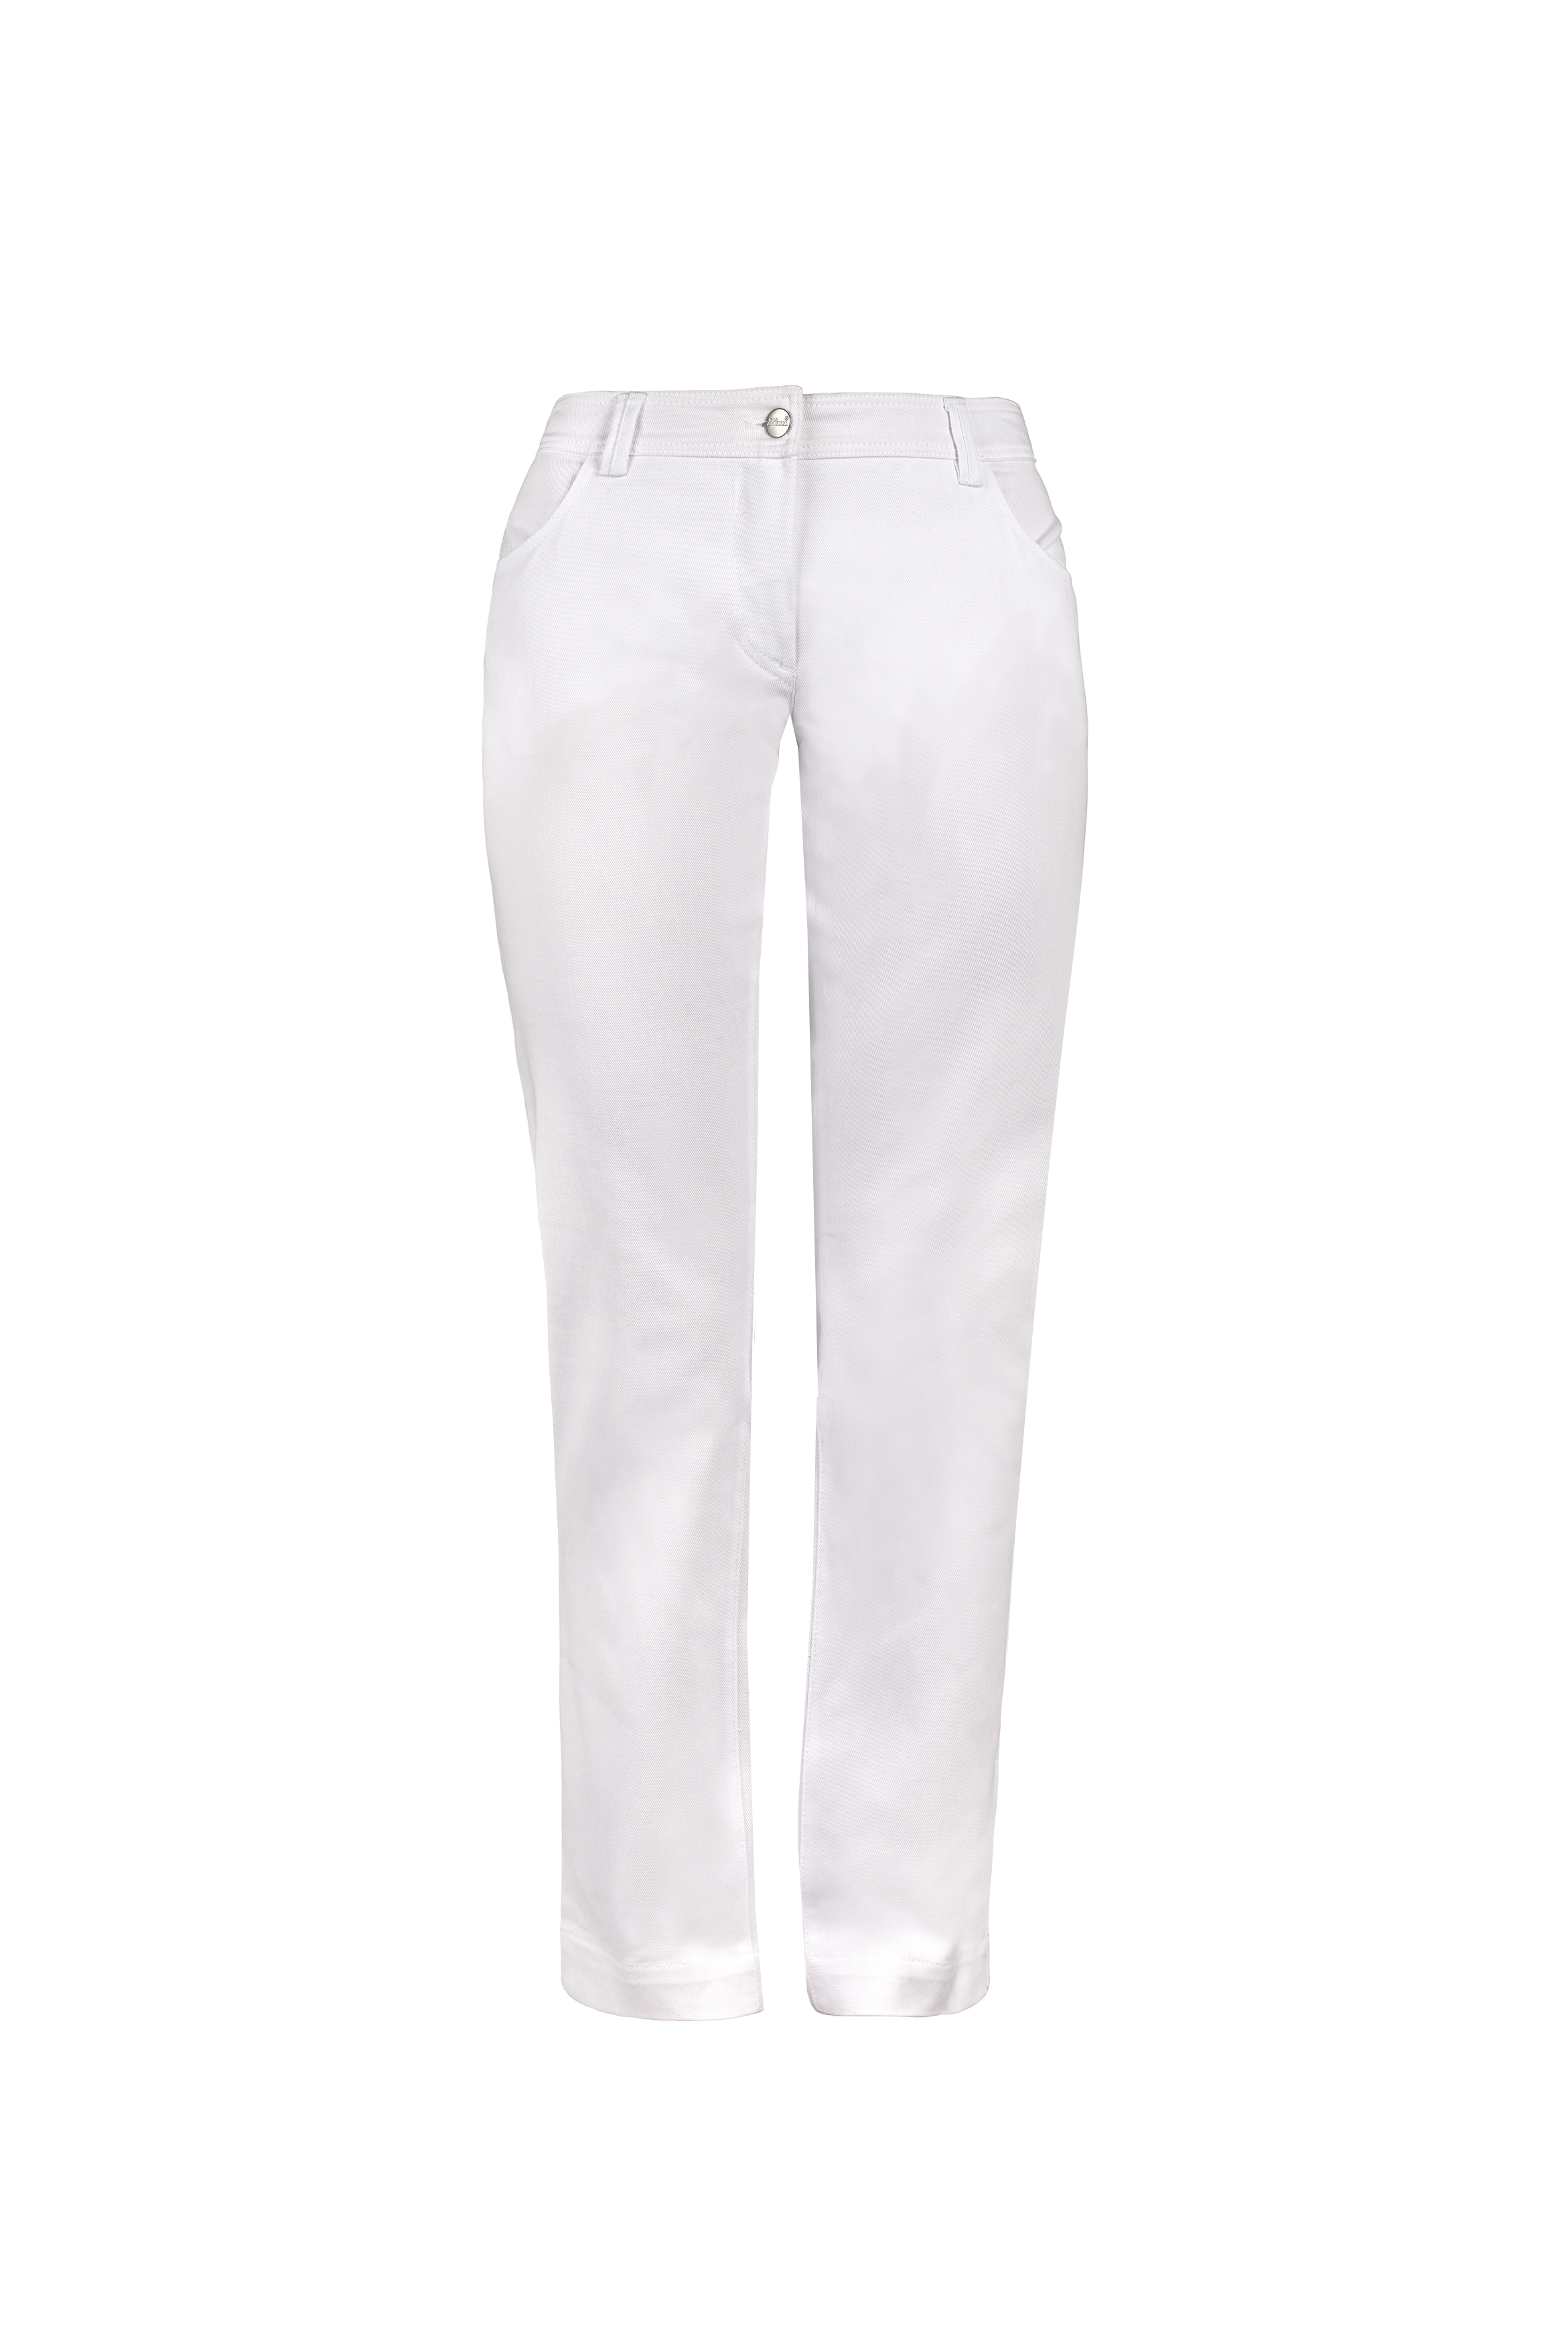 Damen Hose Jeans Basic Fit